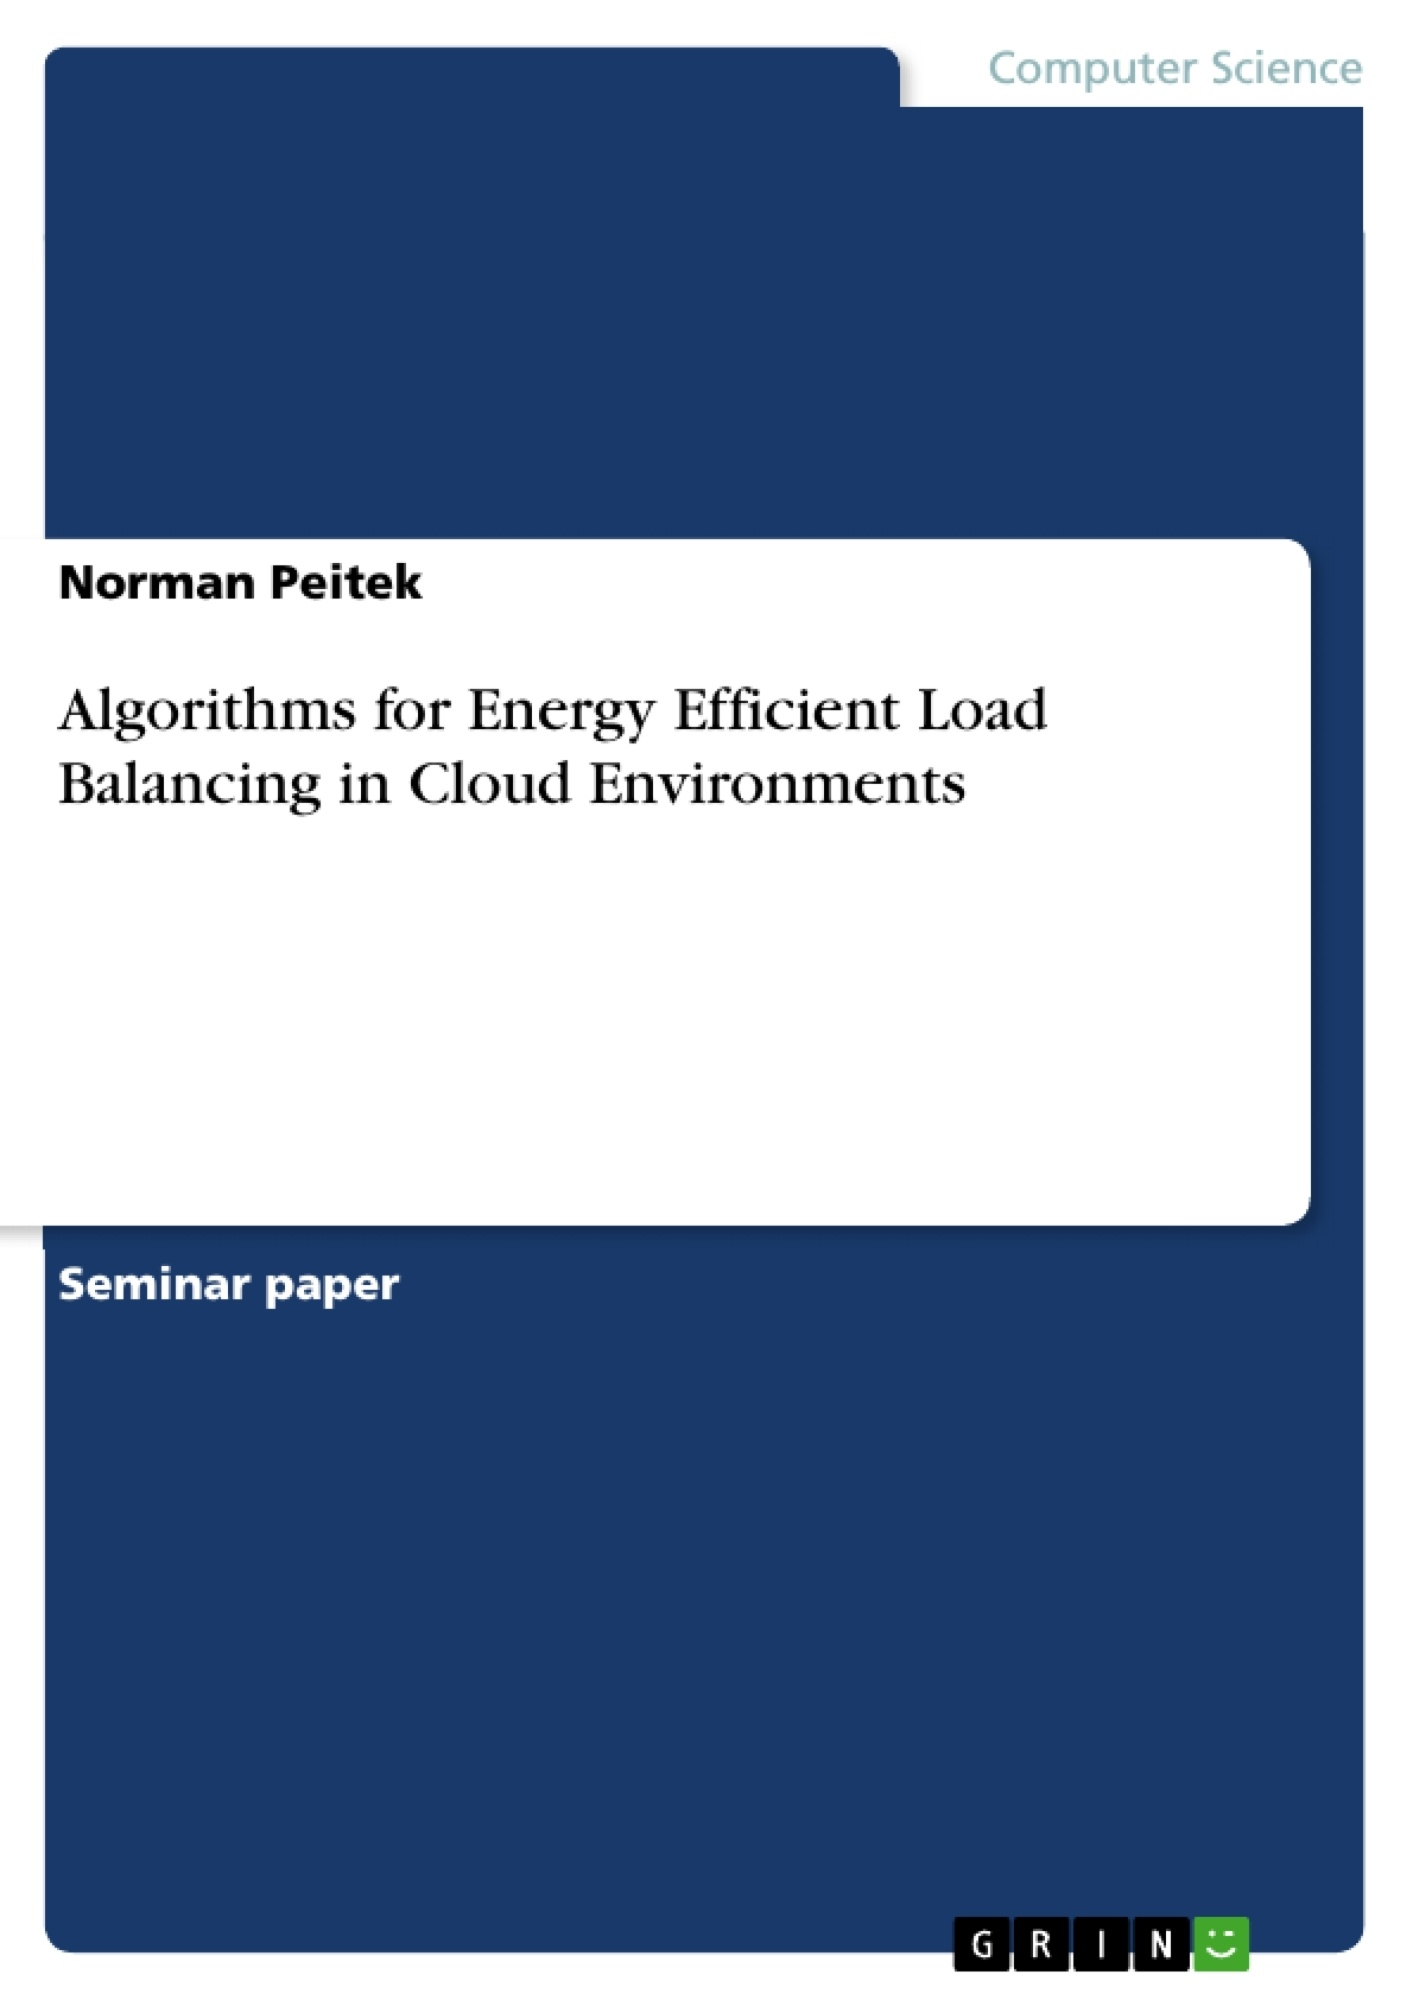 Title: Algorithms for Energy Efficient Load Balancing in Cloud Environments